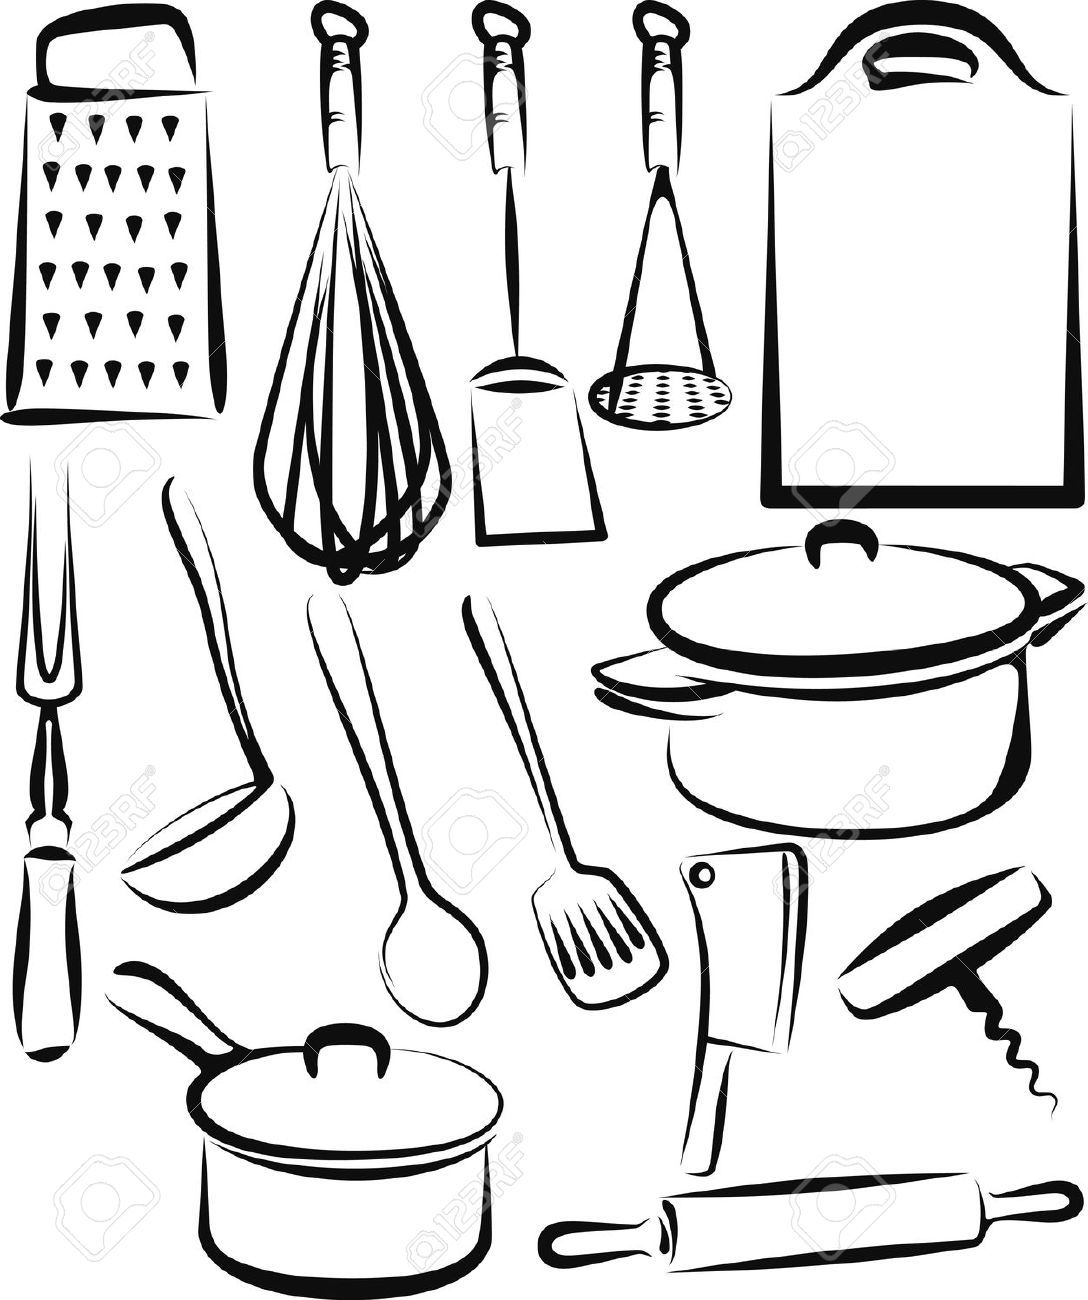 Kitchen utensil royalty free cliparts vectors and stock